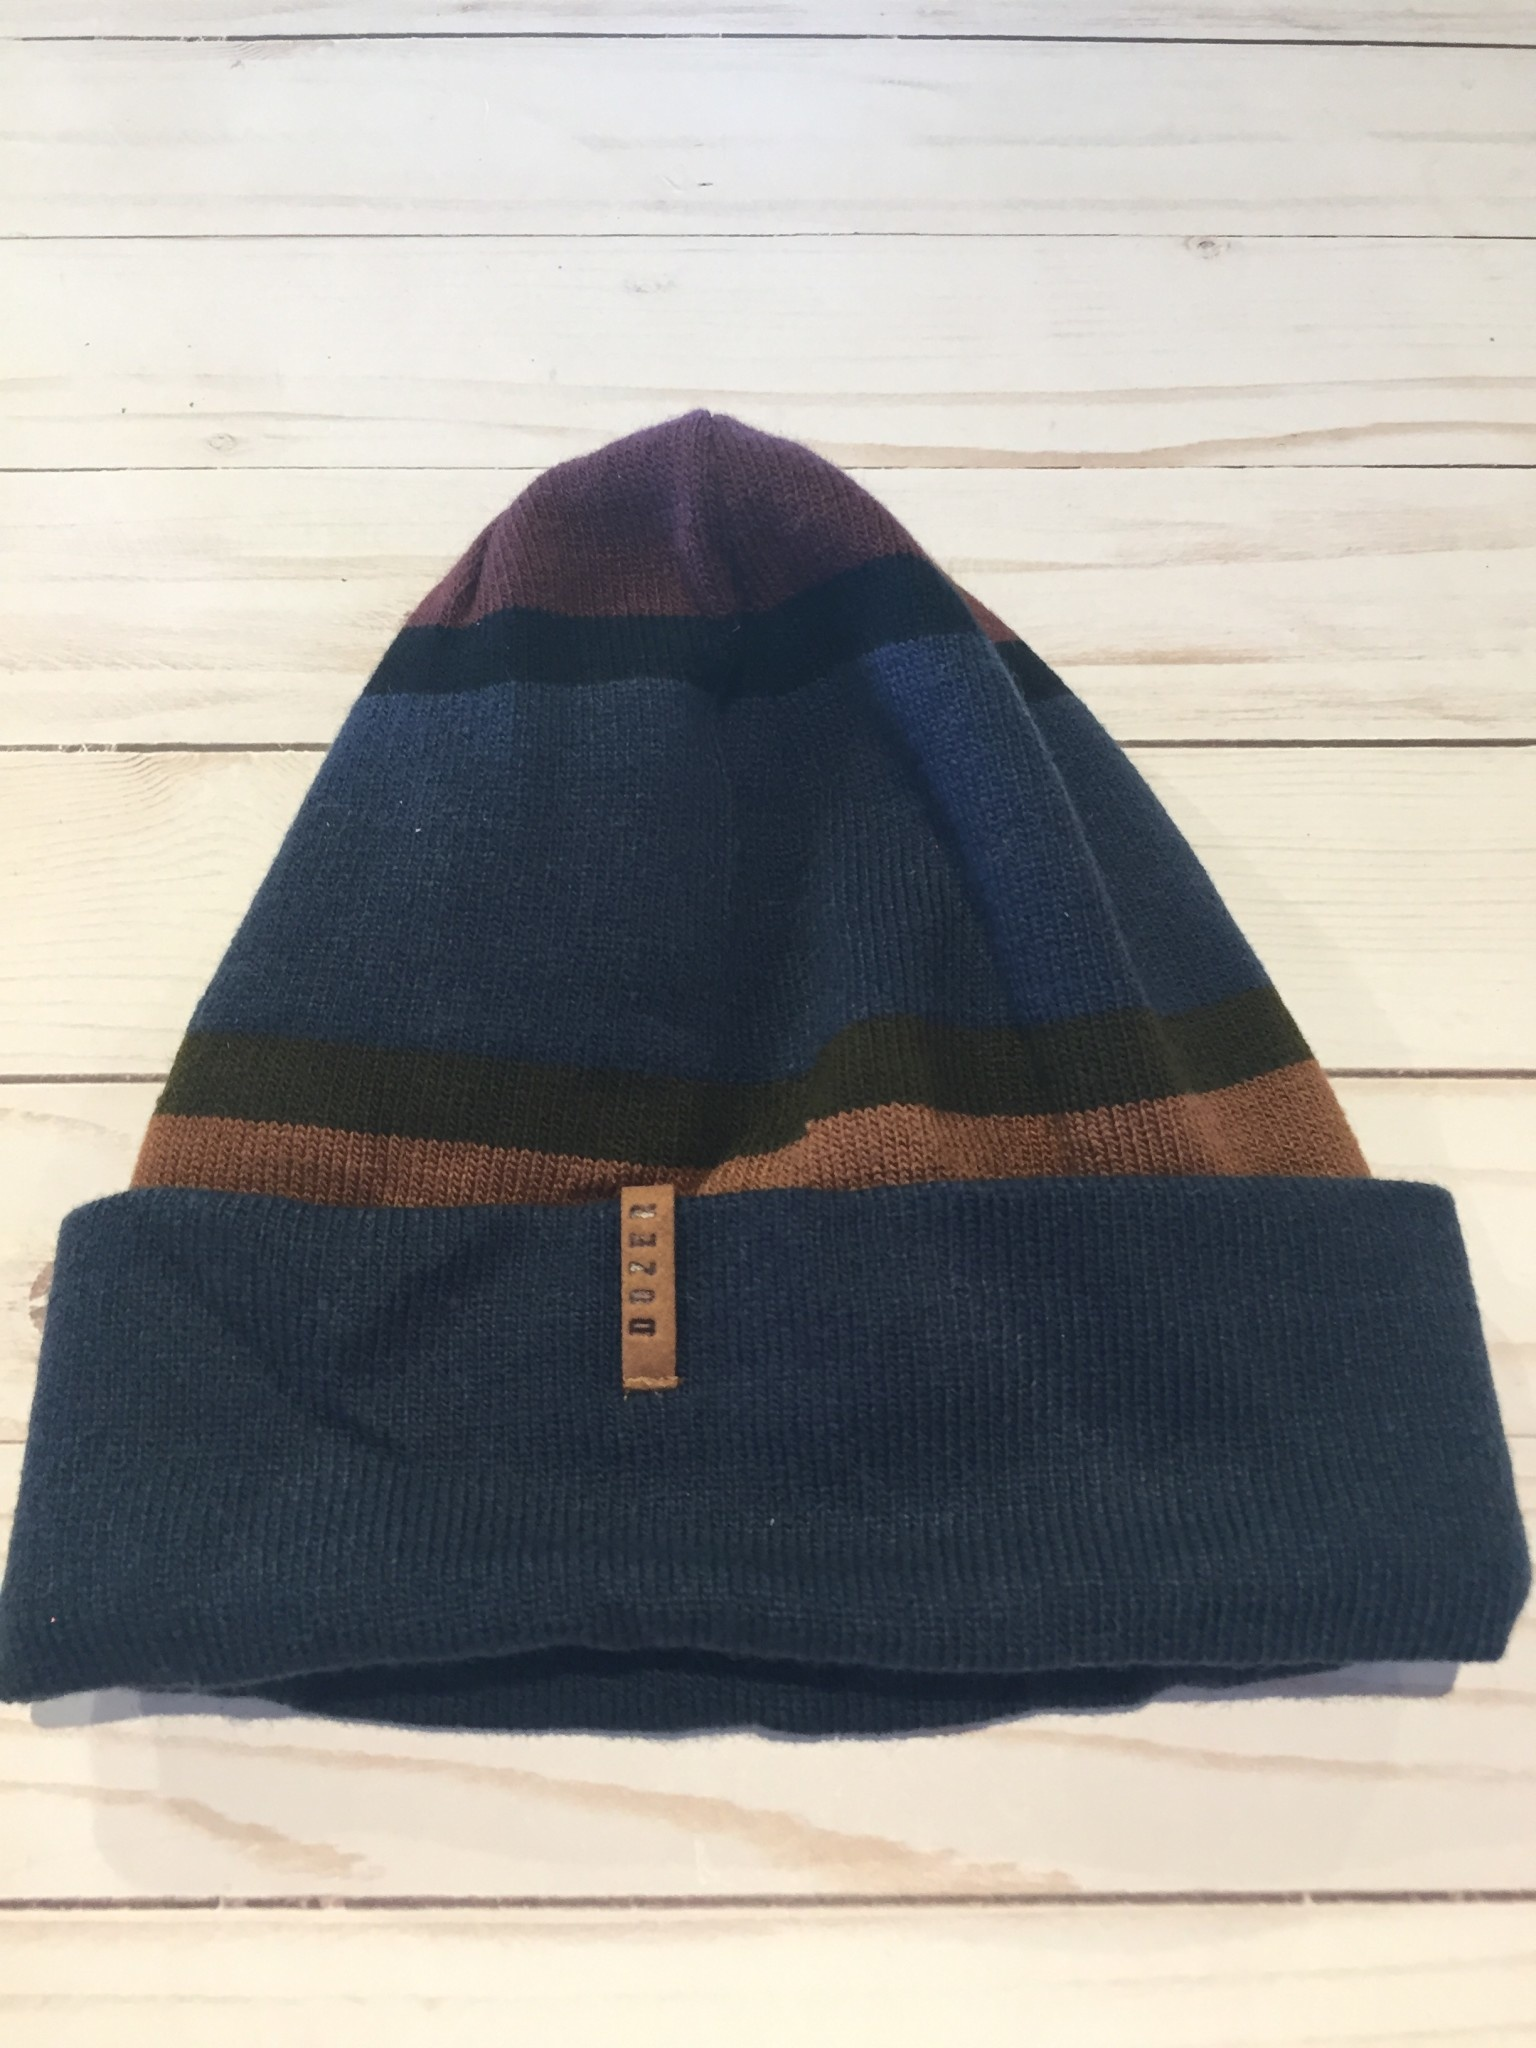 Millymook and Dozer Boys Beanie - Rory Steel One Size (2-7y)